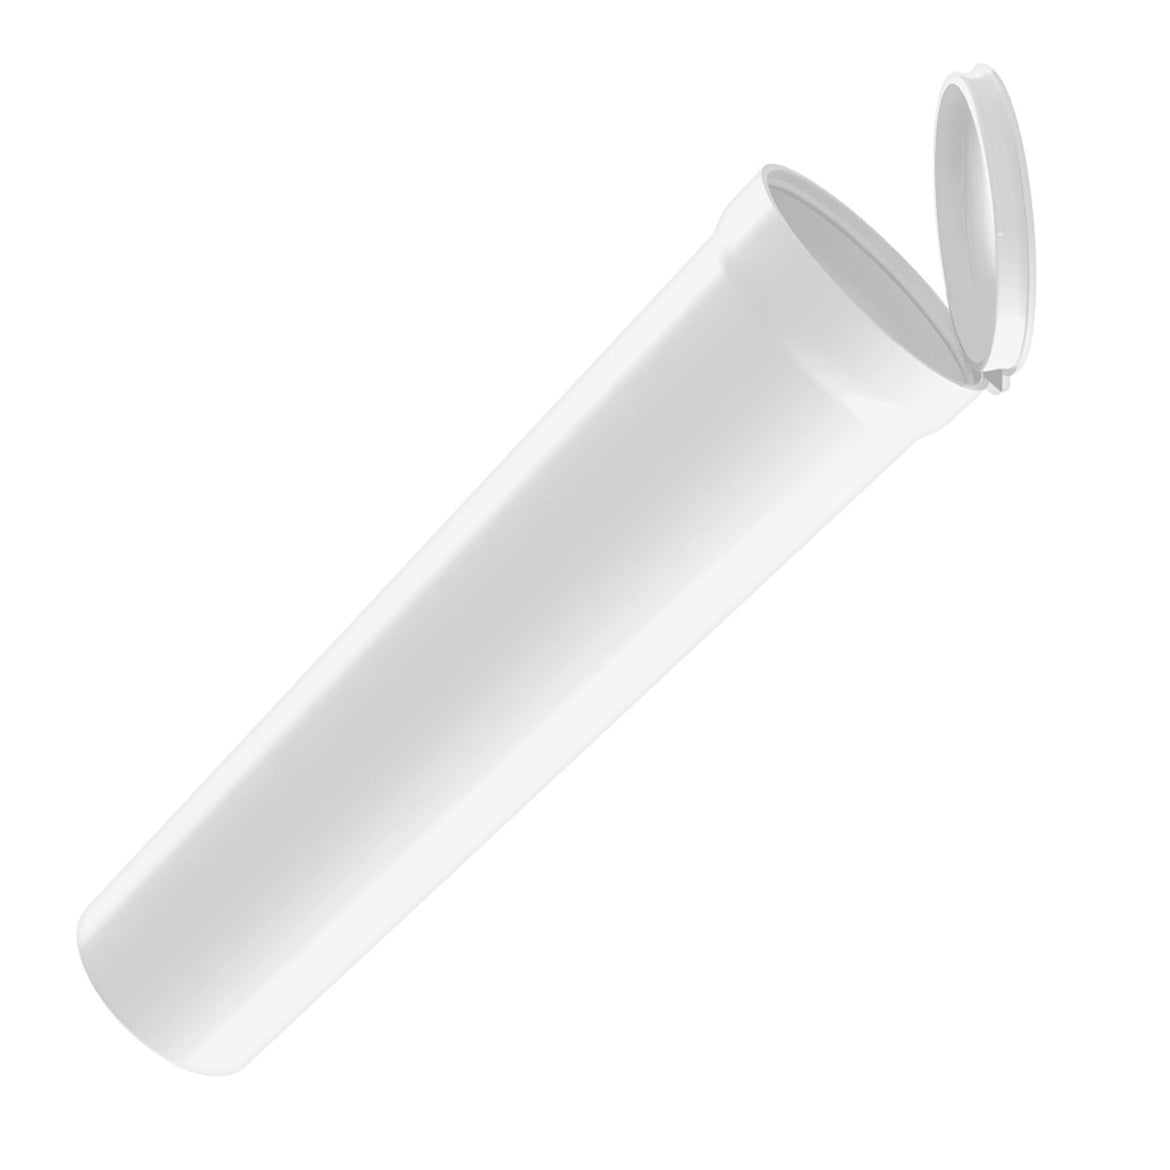 wide tapered plastic 114mm bulk wholesale pop-top pre-roll tubes opaque white